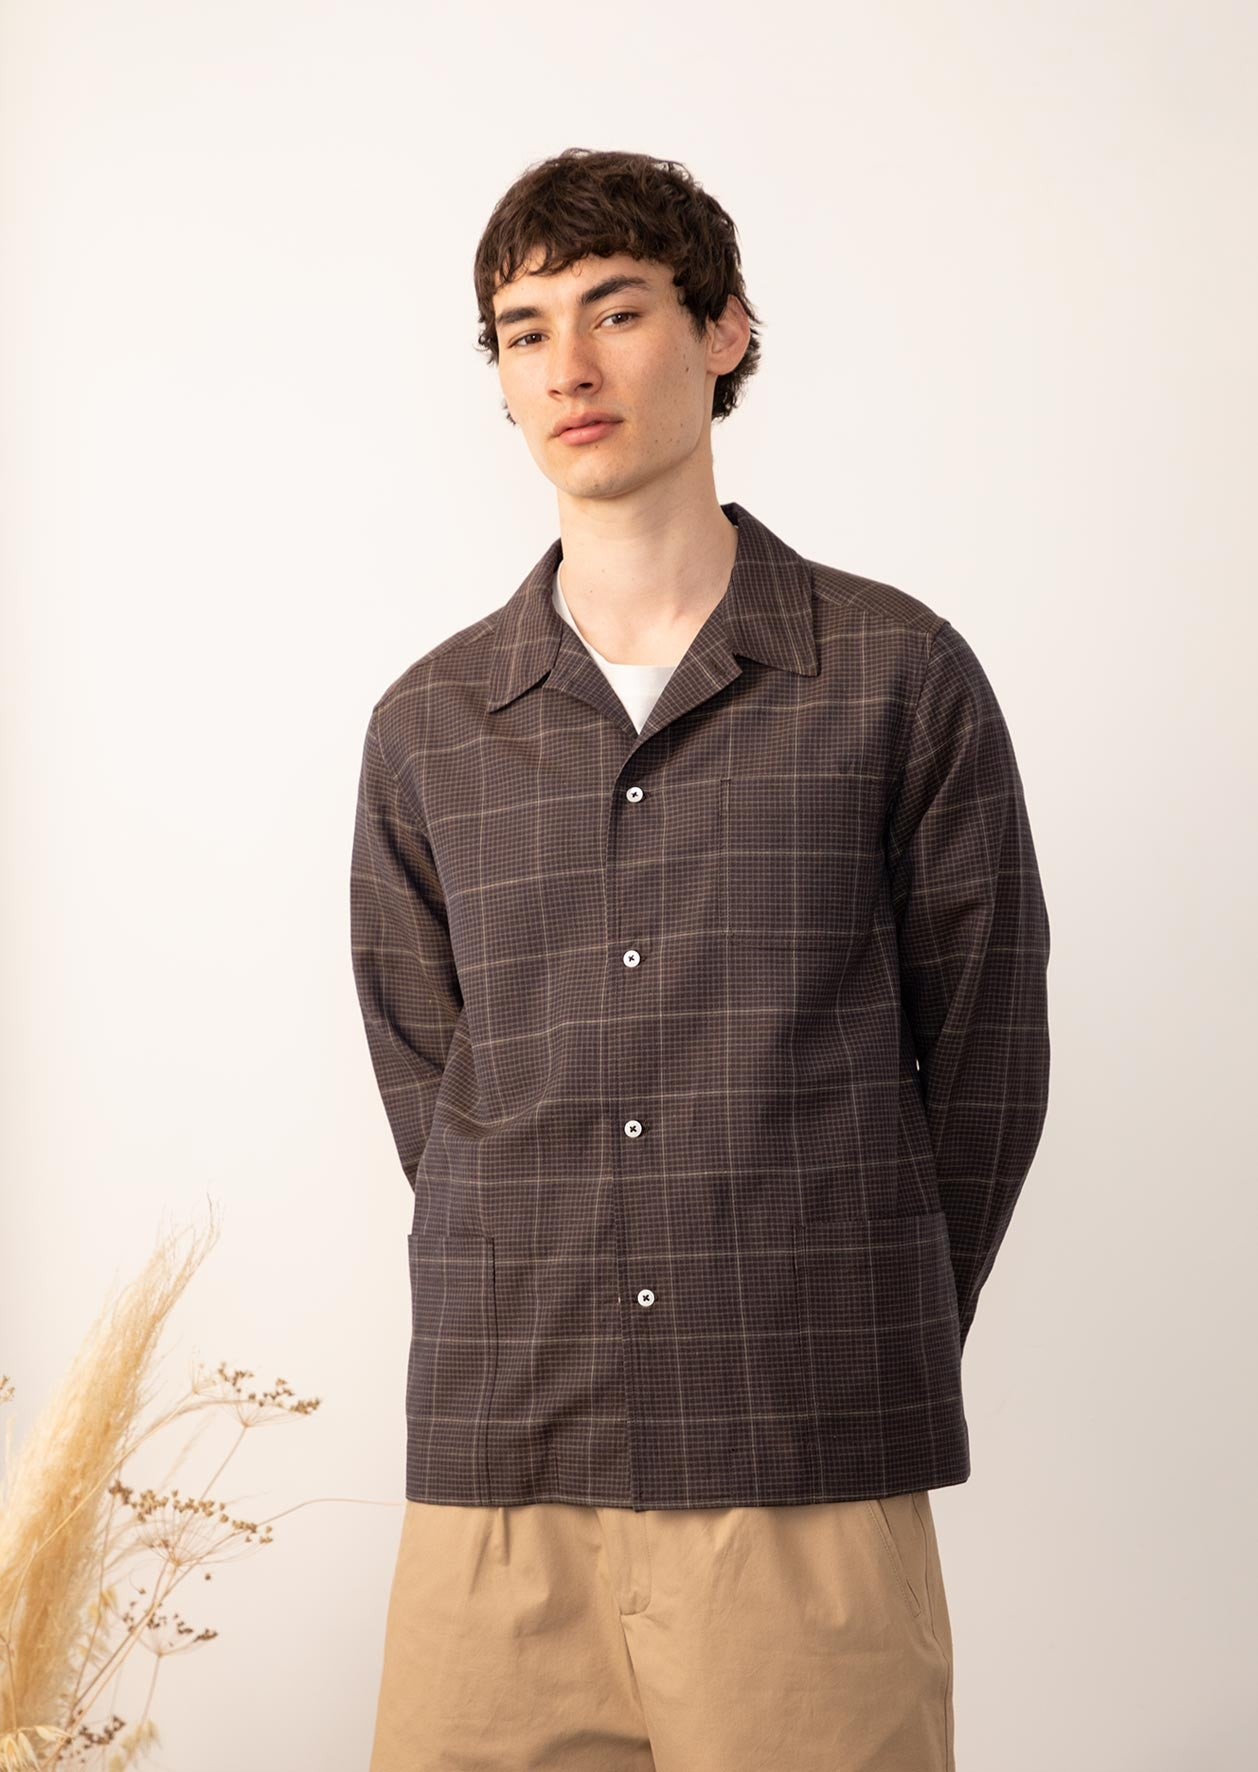 De Bonne Facture - Painter's jacket - Washed wool & linen - Dark brown checks